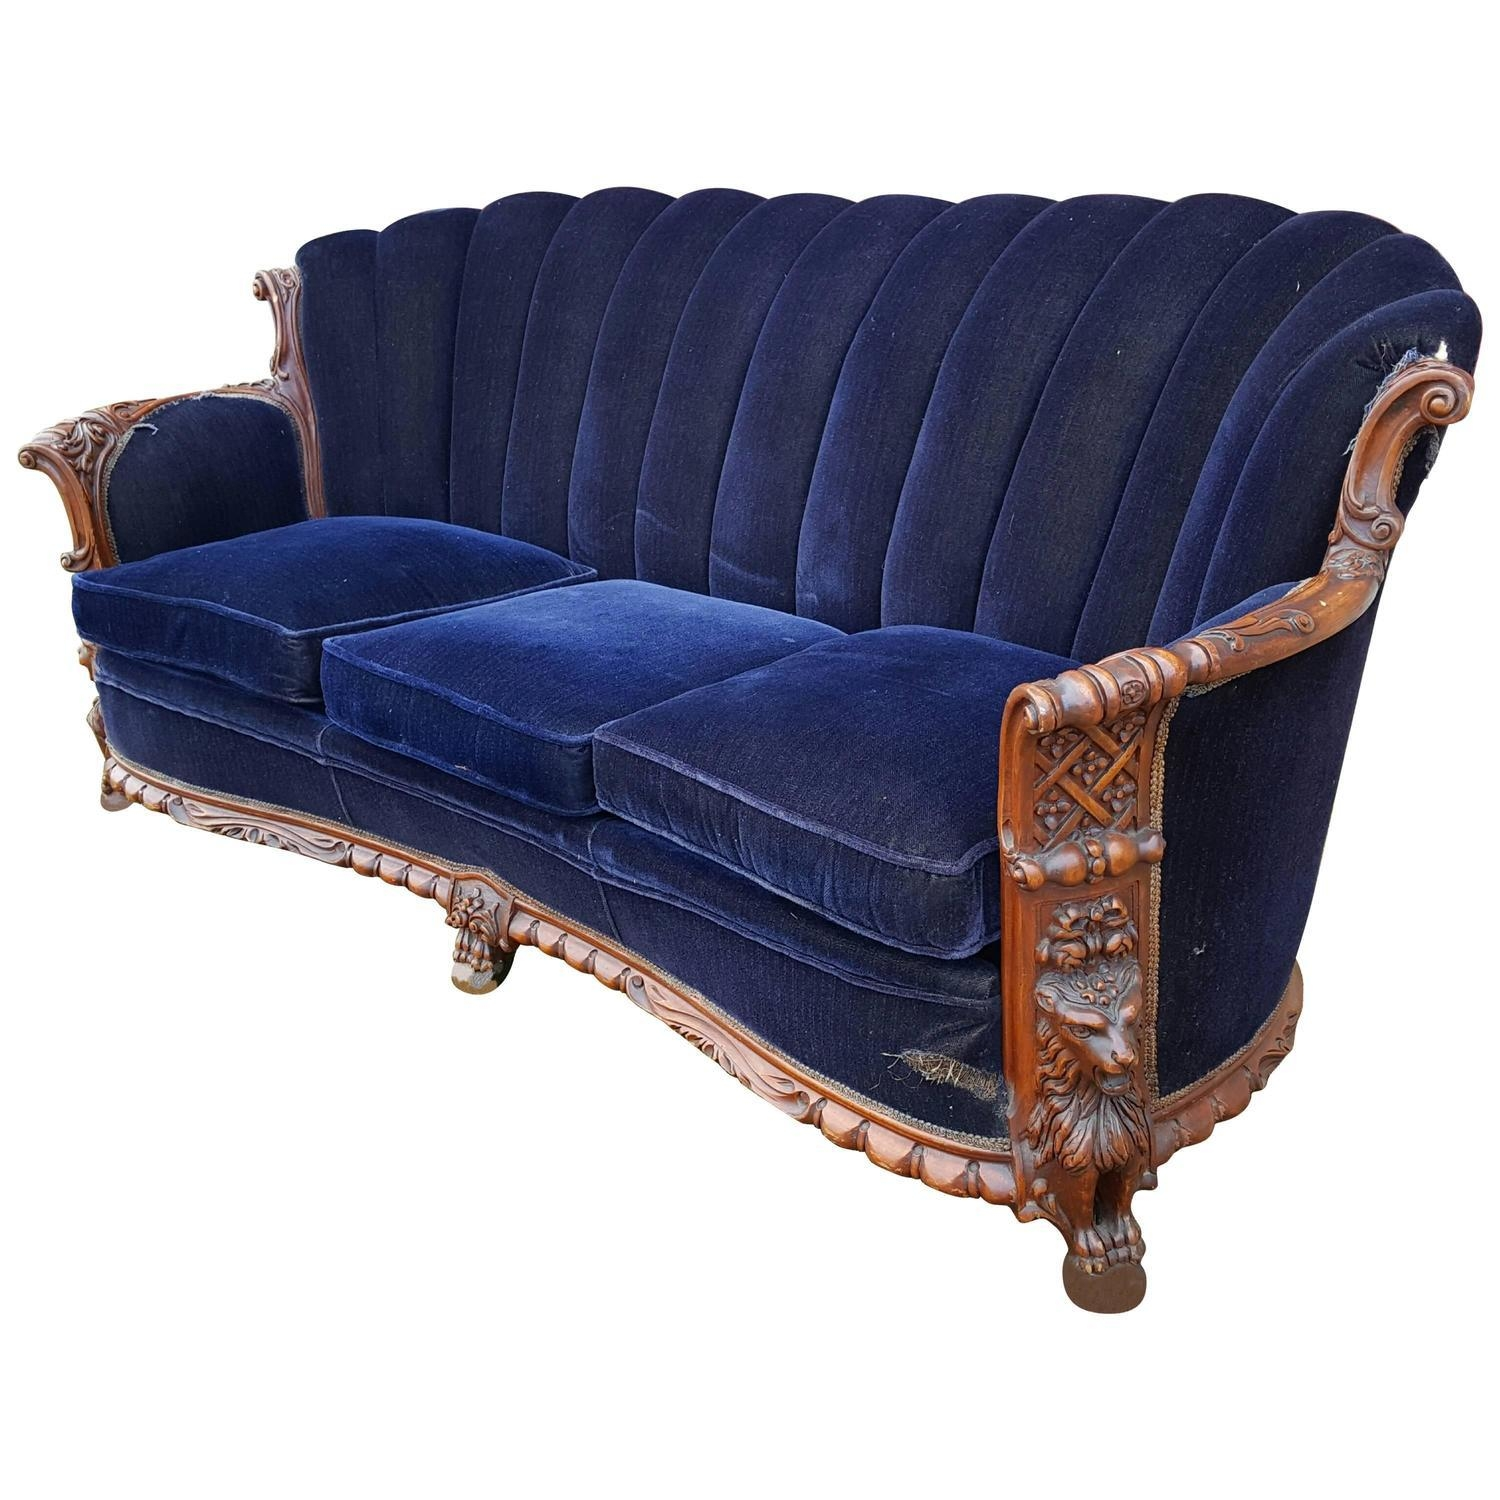 1930S Mohair And Carved Wood Sofa, Carved Lion Motif At 1Stdibs with Carved Wood Sofas